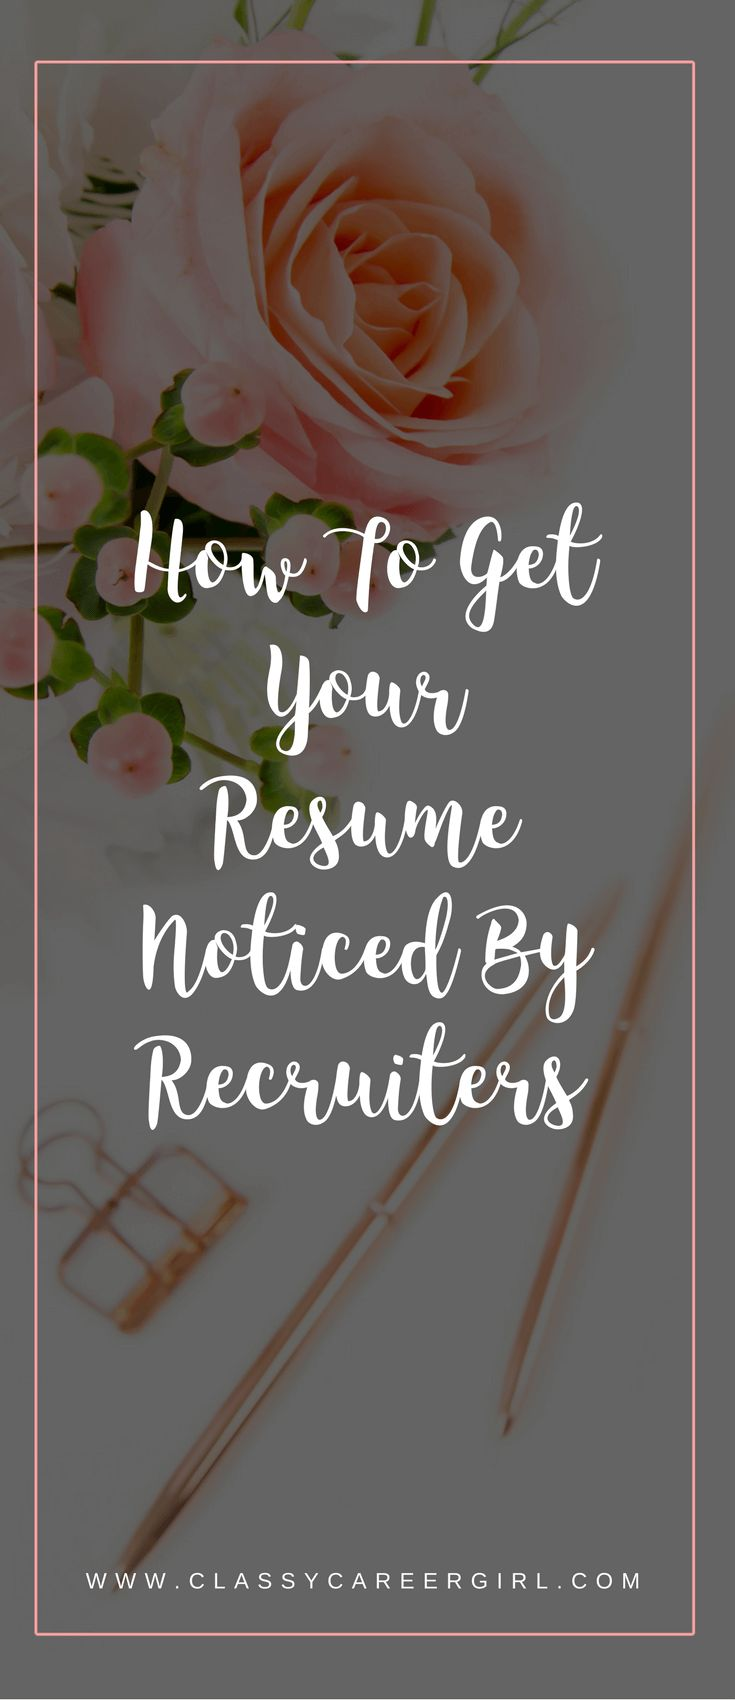 How To Get Your Resume Noticed By Recruiters | Classy Career Girl